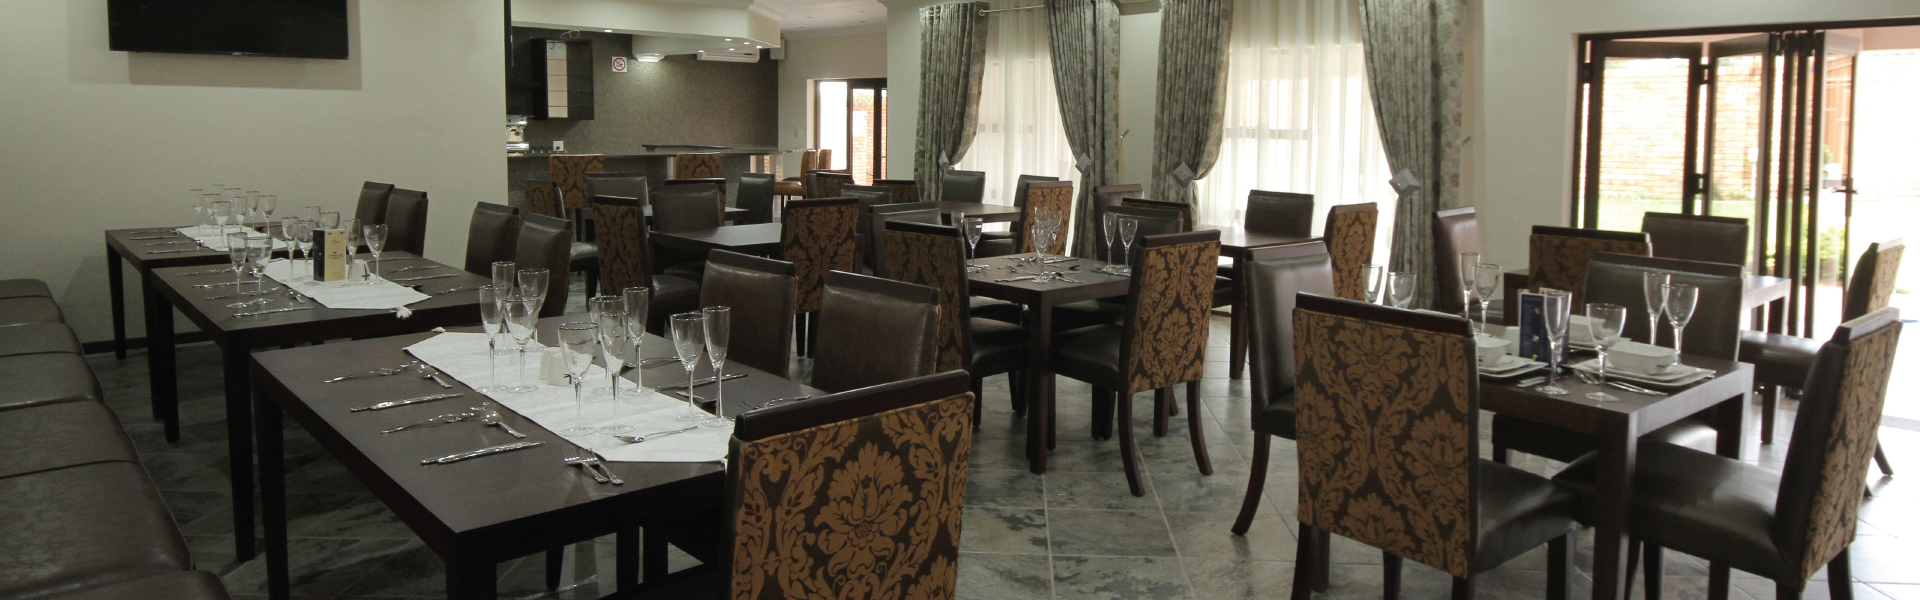  accommodation and conference venue in KwaMhlanga